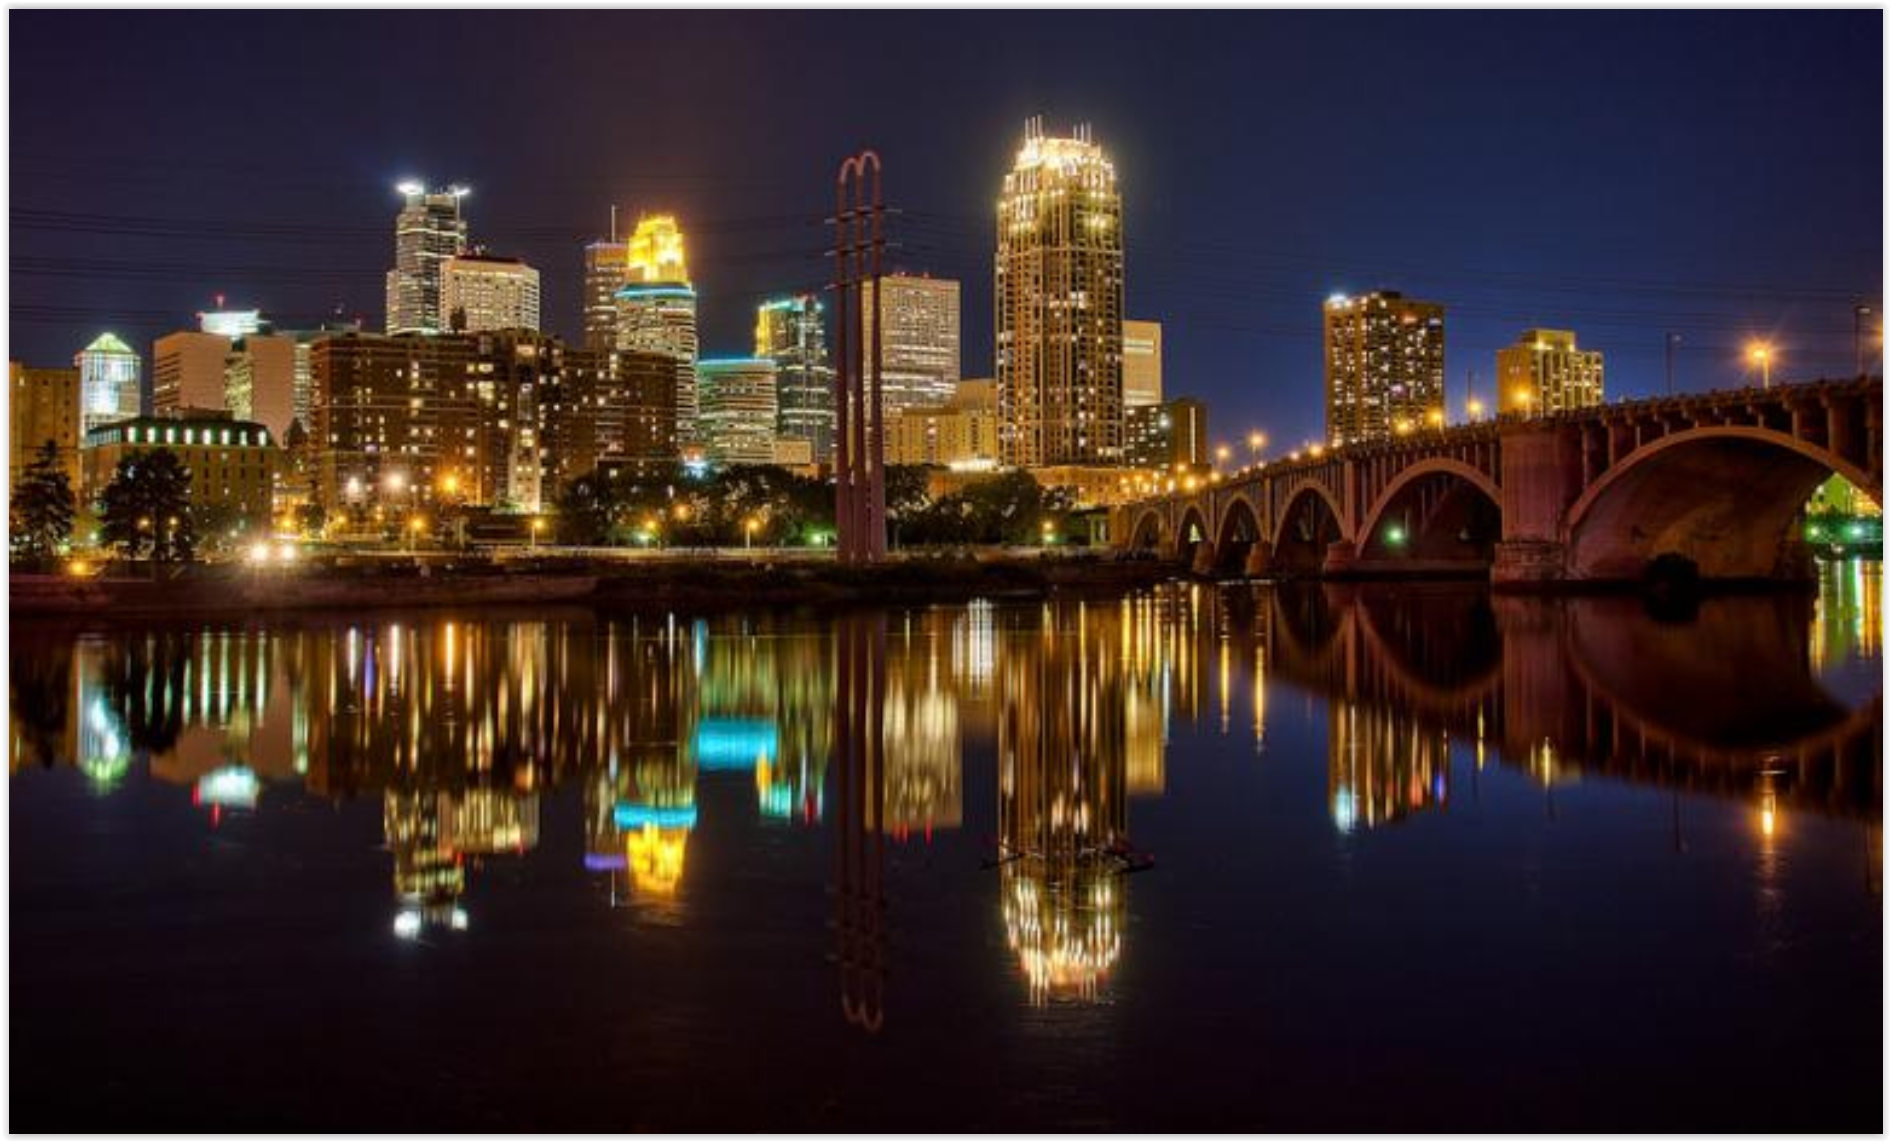 Average Temperatures Minneapolis - Dayton signs into states climate goal alliance rochester s post bulletin has details minnesota s governor is committing the state to upholding the paris